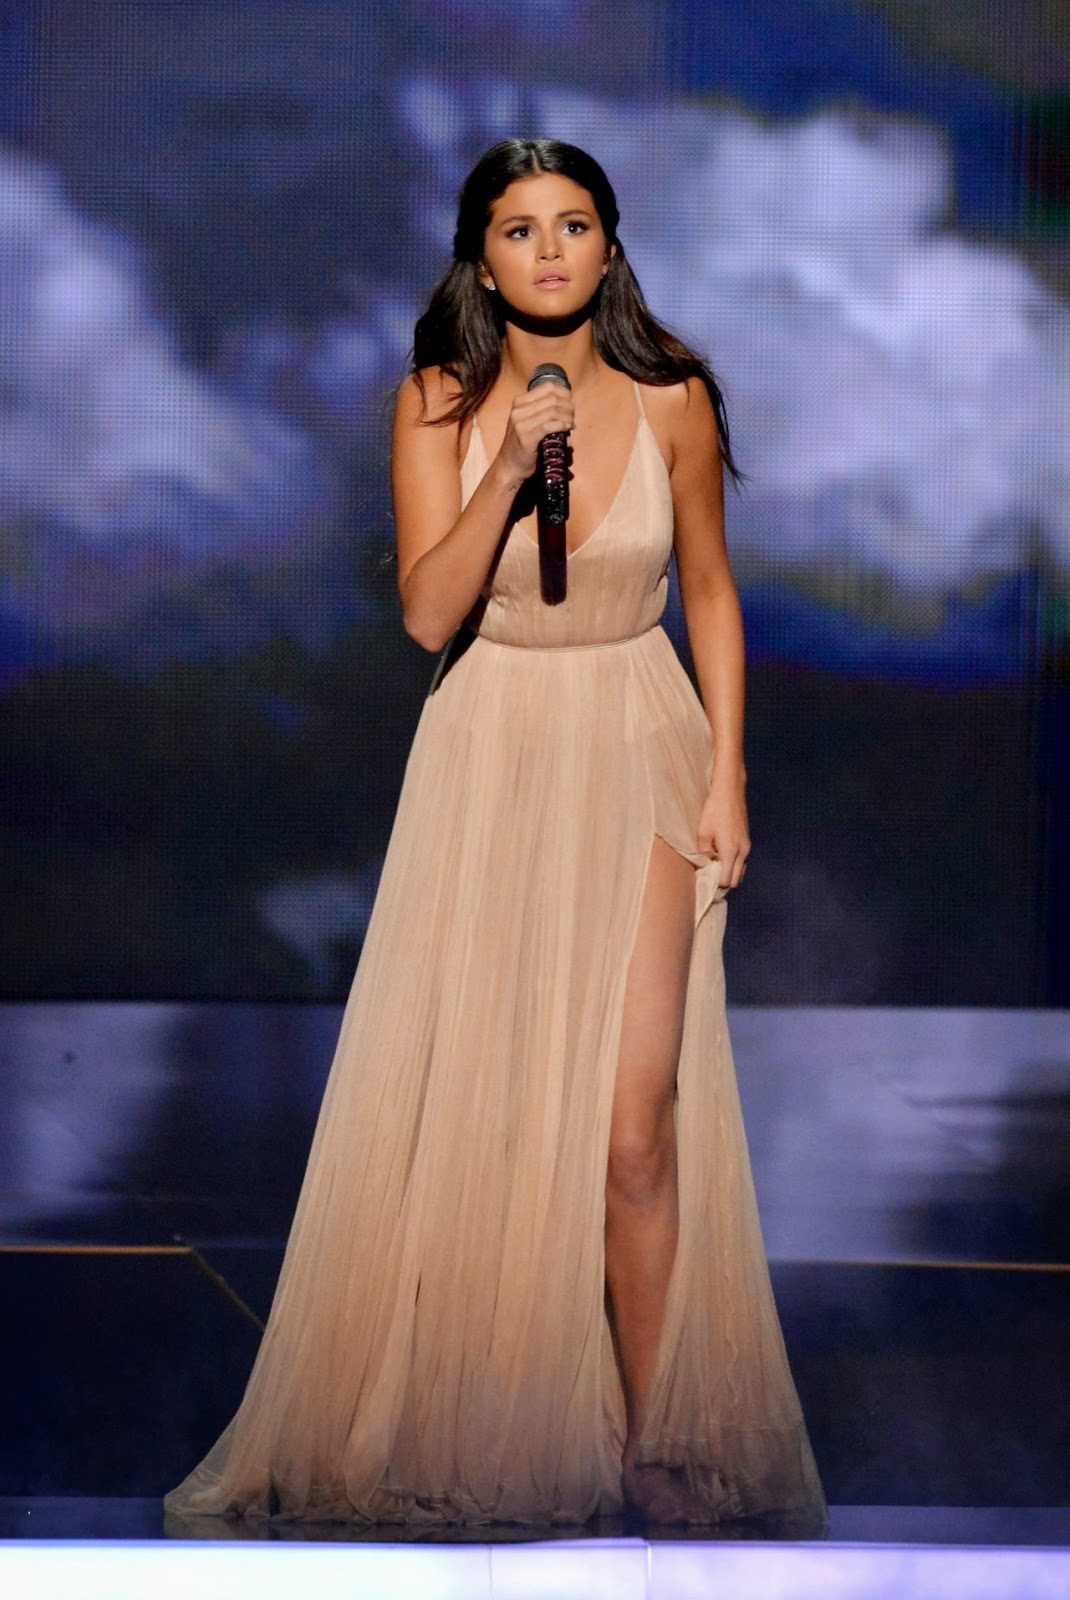 Selena Gomez looks beautiful in a delicate Giorgio Armani gown for her 2014 American Music Awards performance